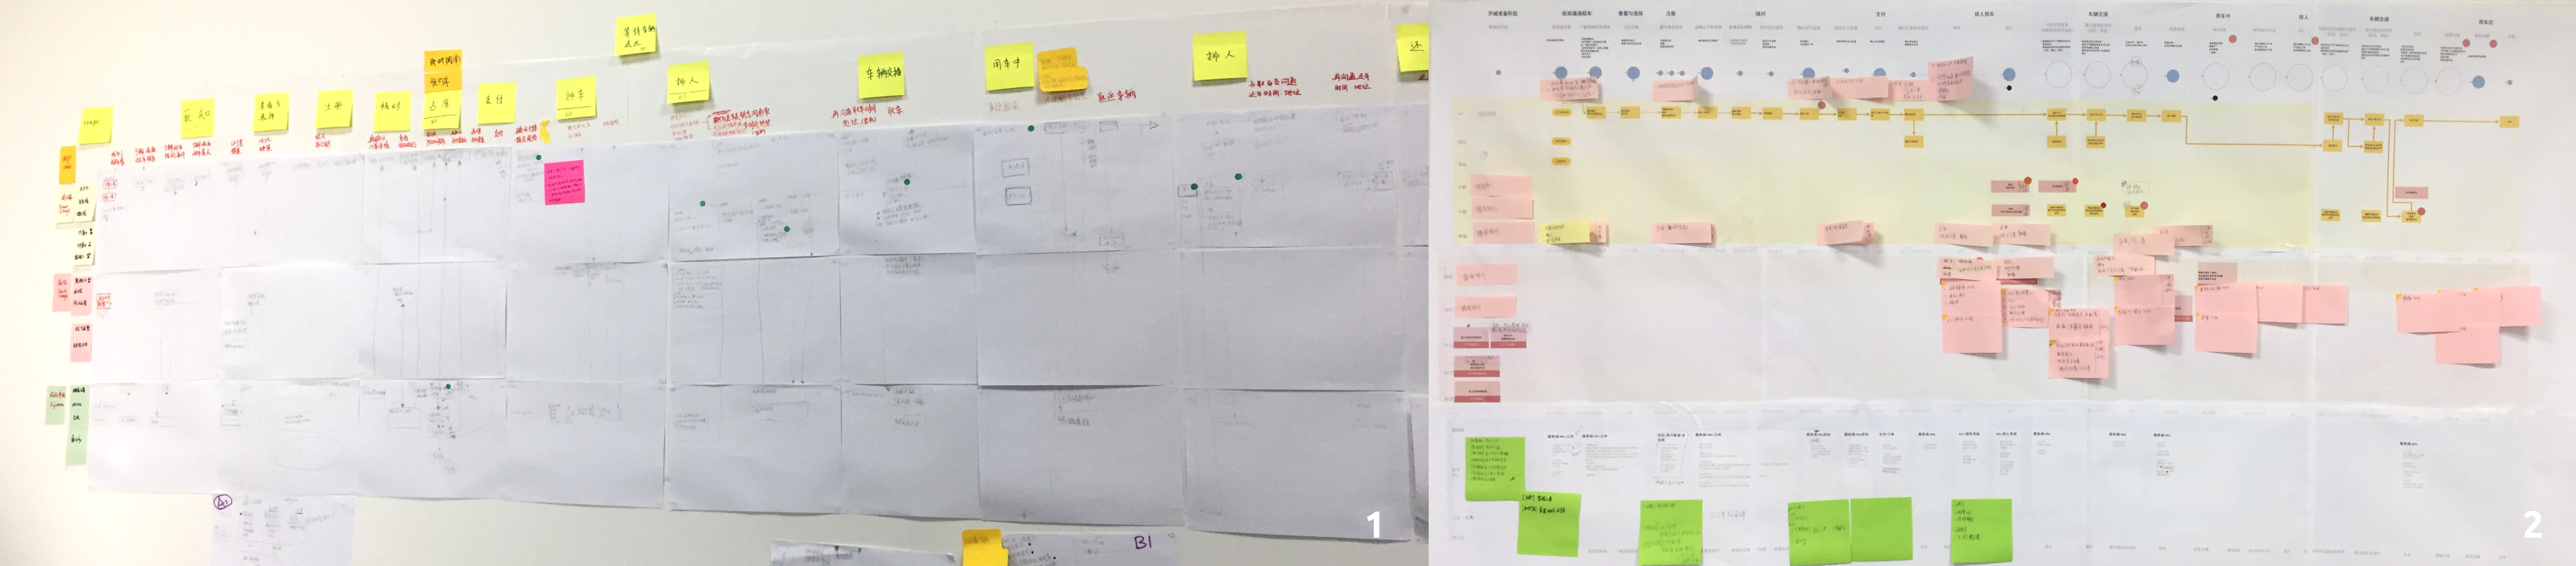 Thesis 3 found it was impossible to create one service blueprint to visualize all sub services therefore the team decided to host a set of development meetings malvernweather Choice Image